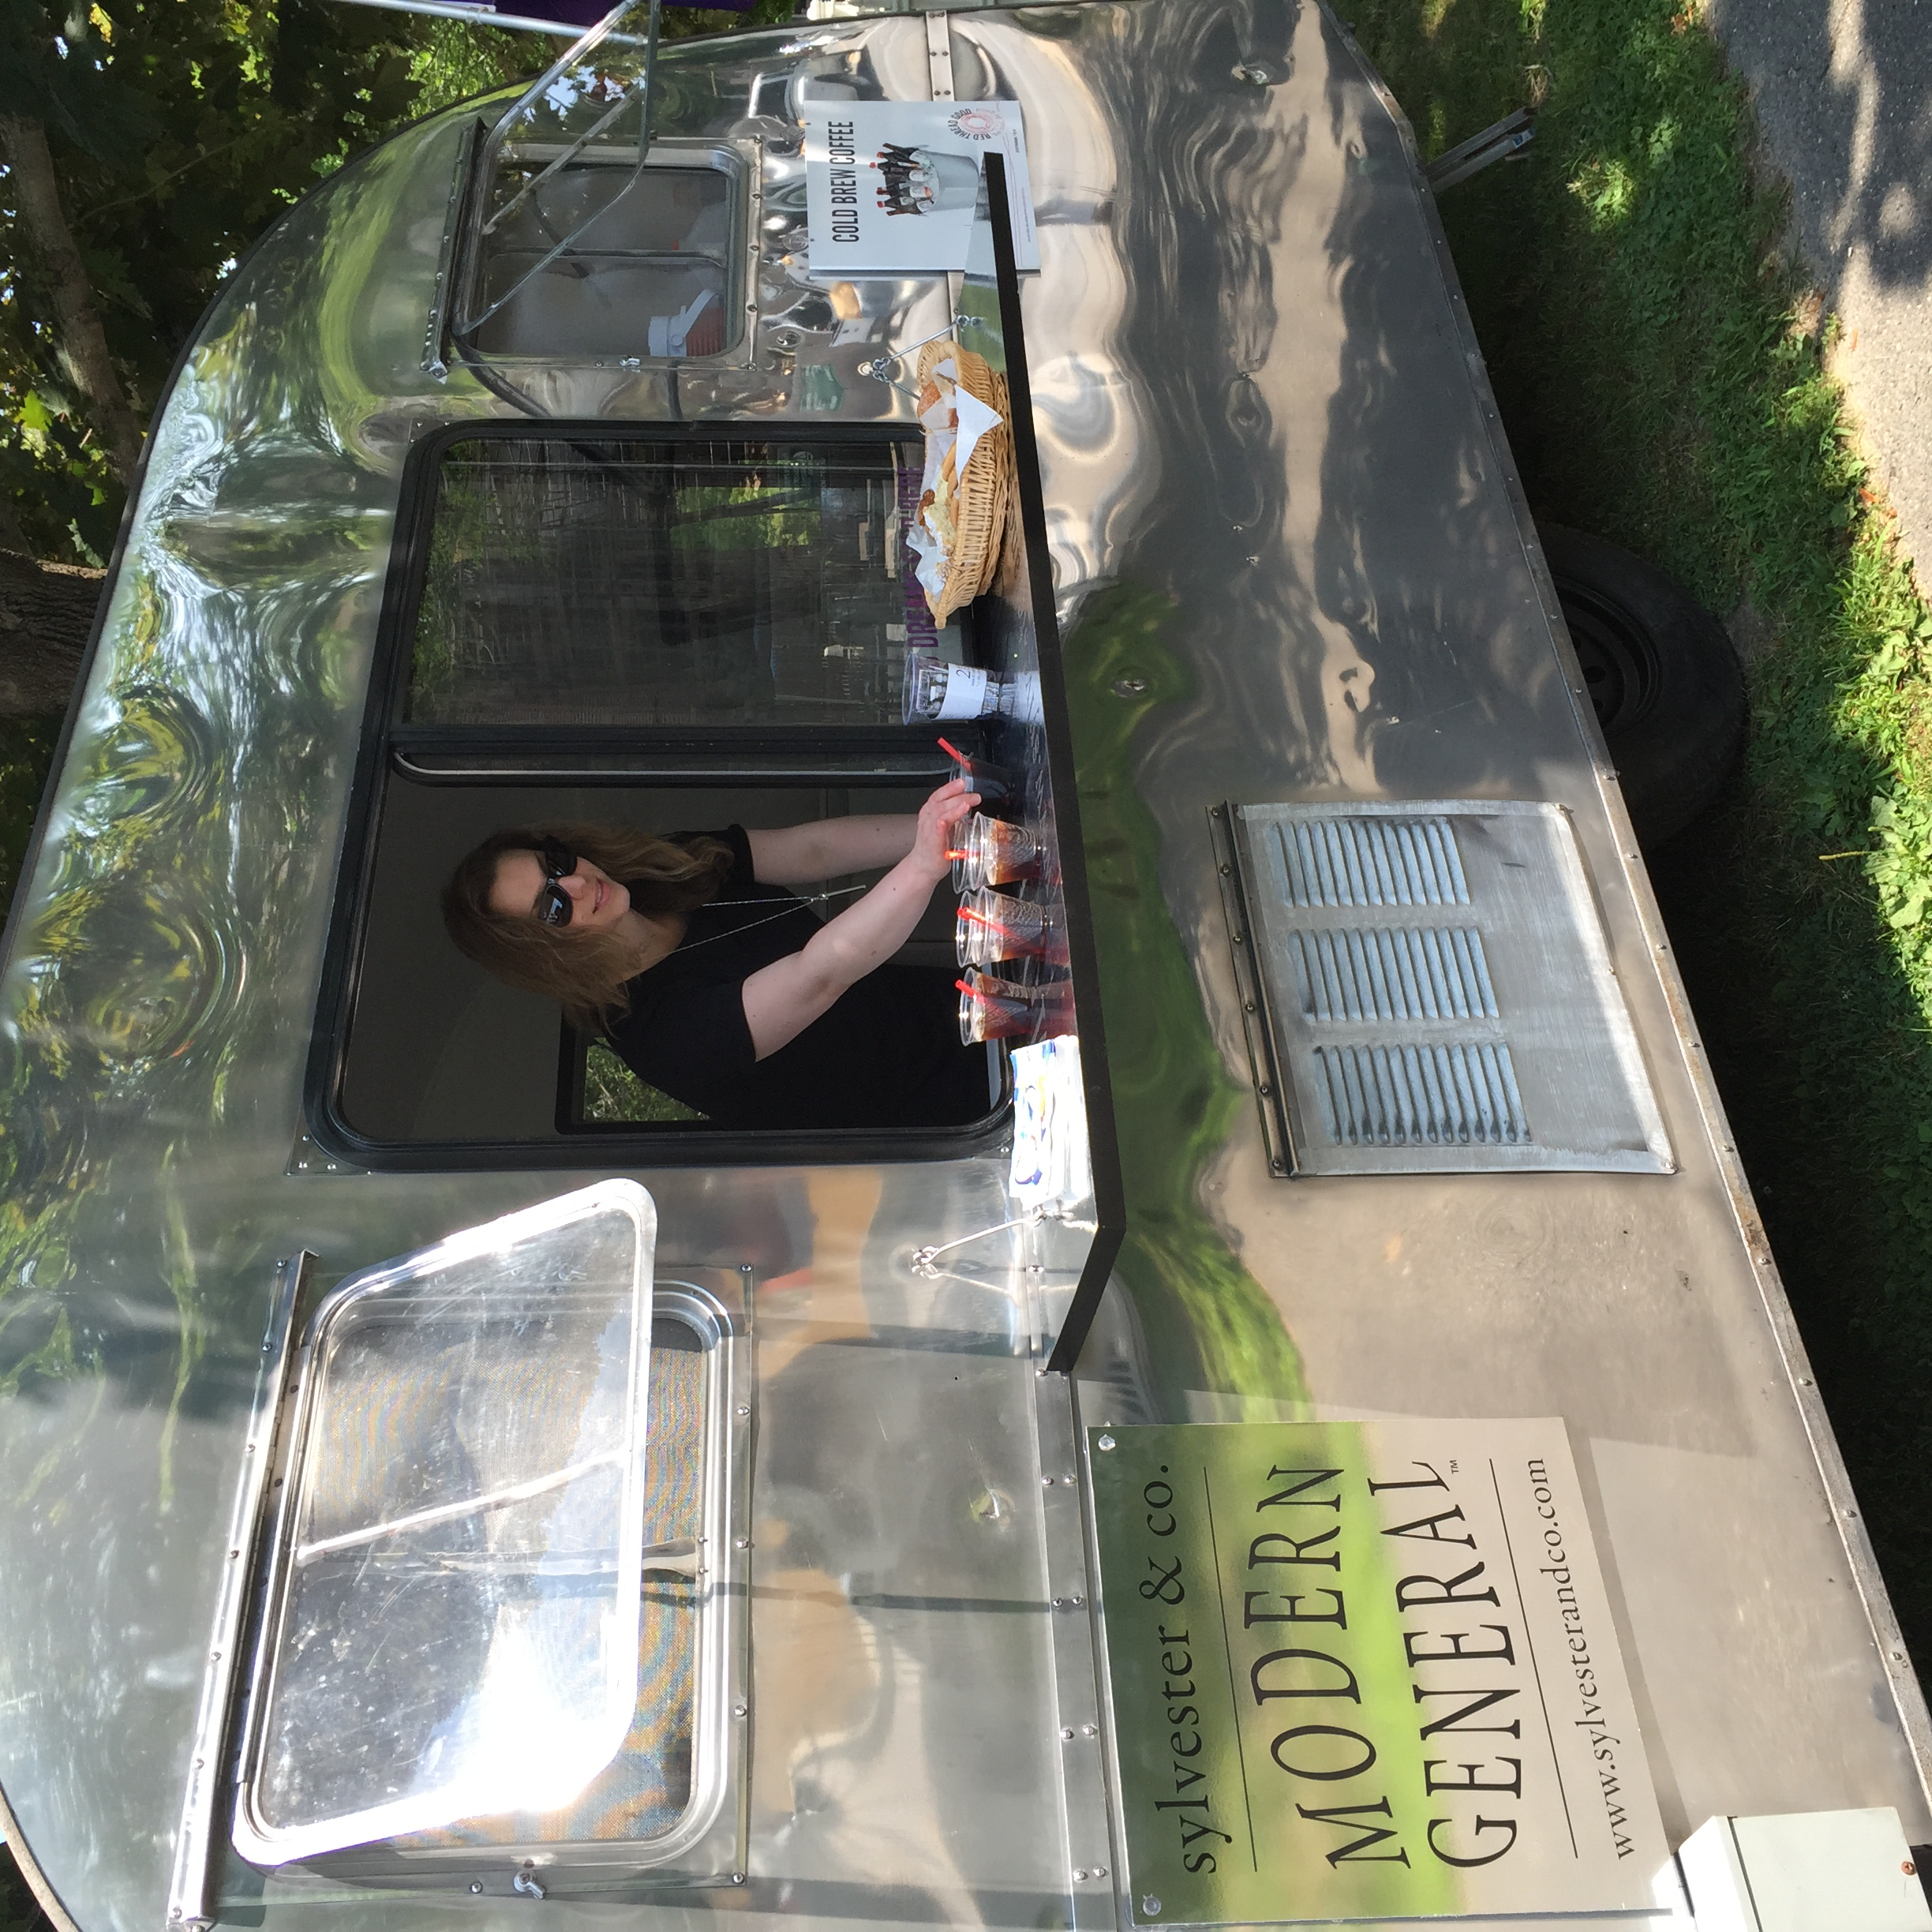 Sylvester & Co Modern General™ serves Dreamy Coffee from their 1947 Airstream.